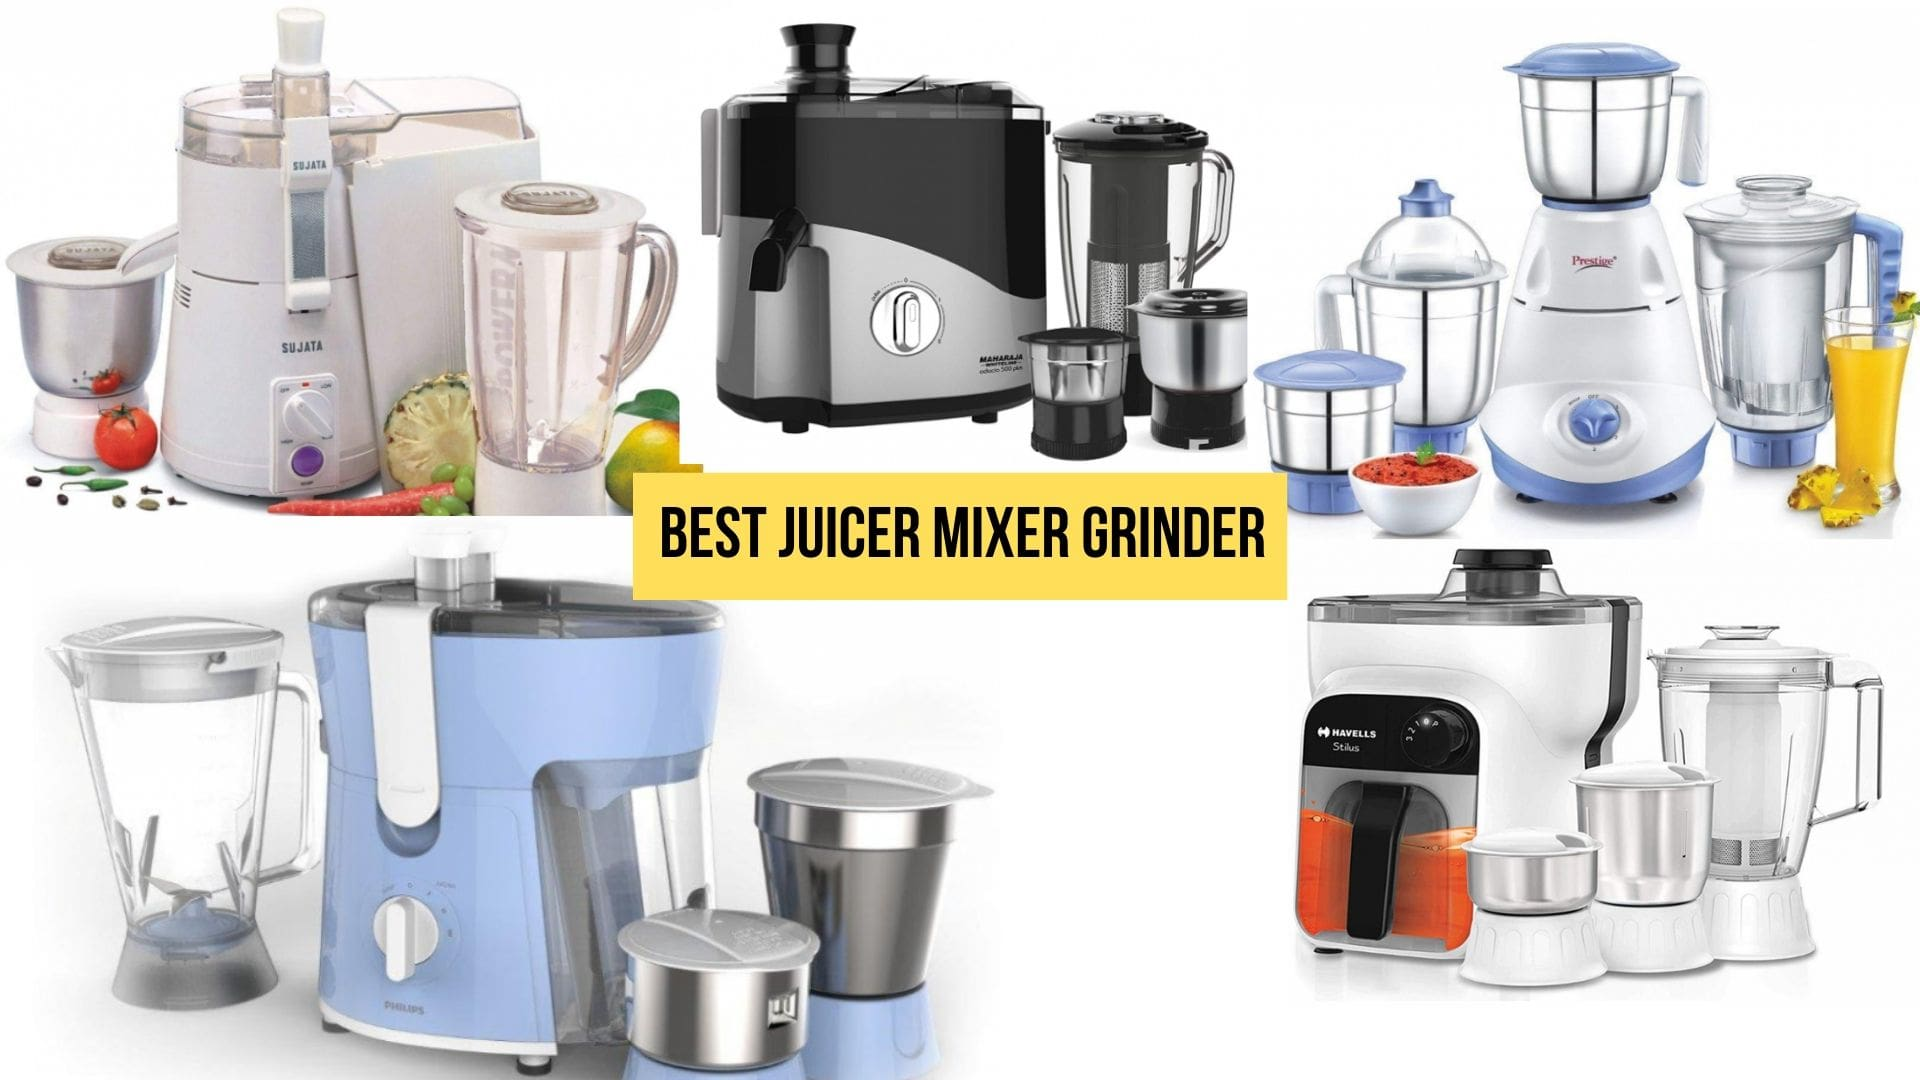 Best Juicer Mixer Grinder To Buy In India 2021: Buying Guide